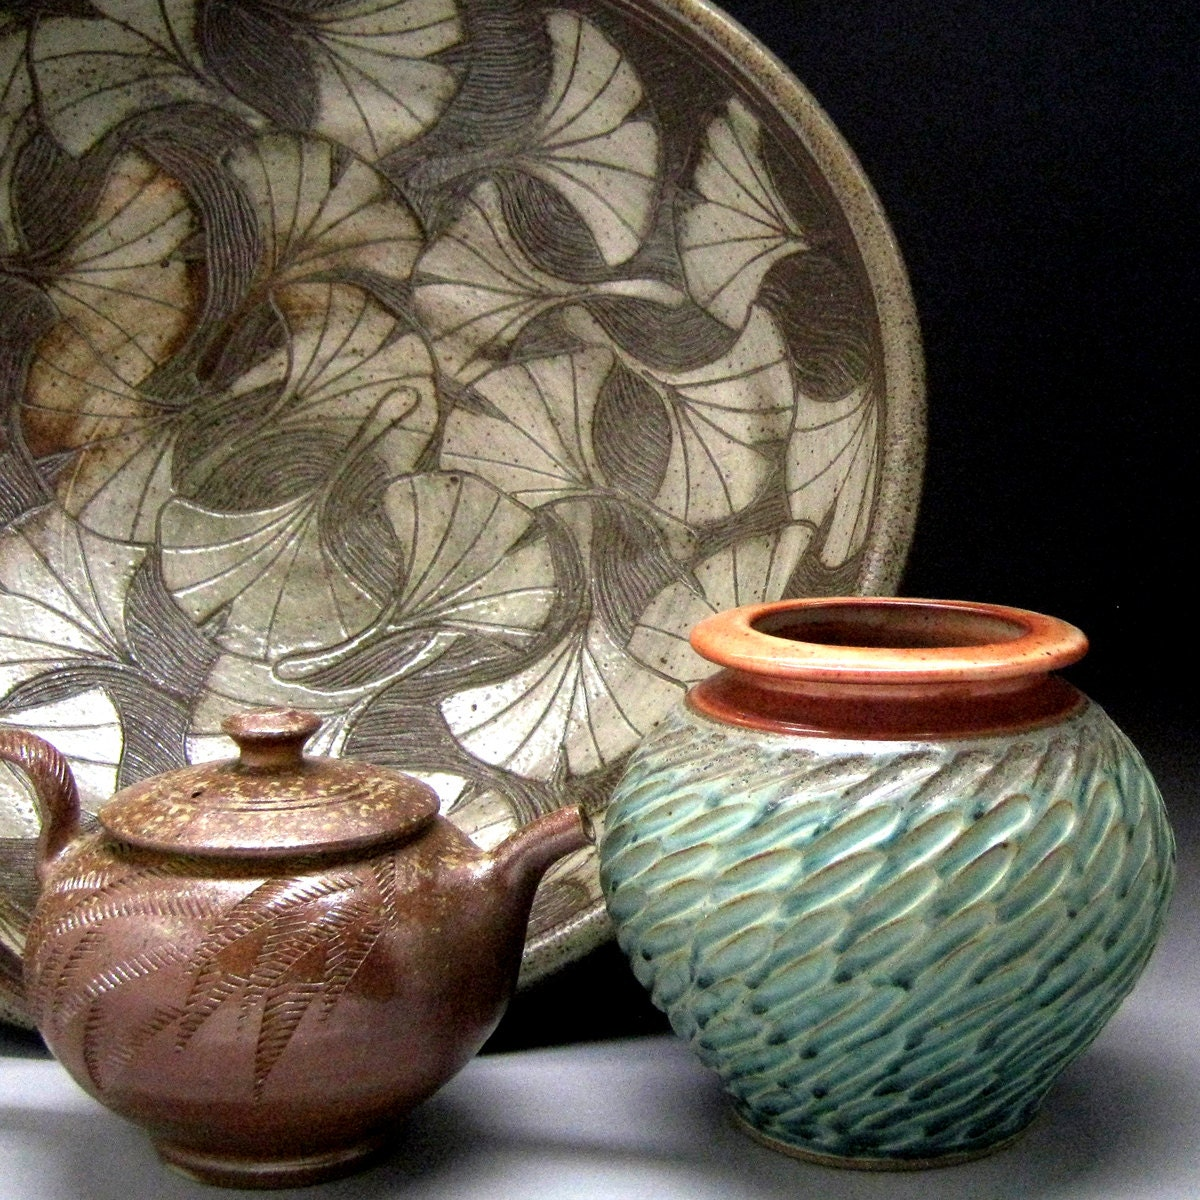 jeffbrownpottery